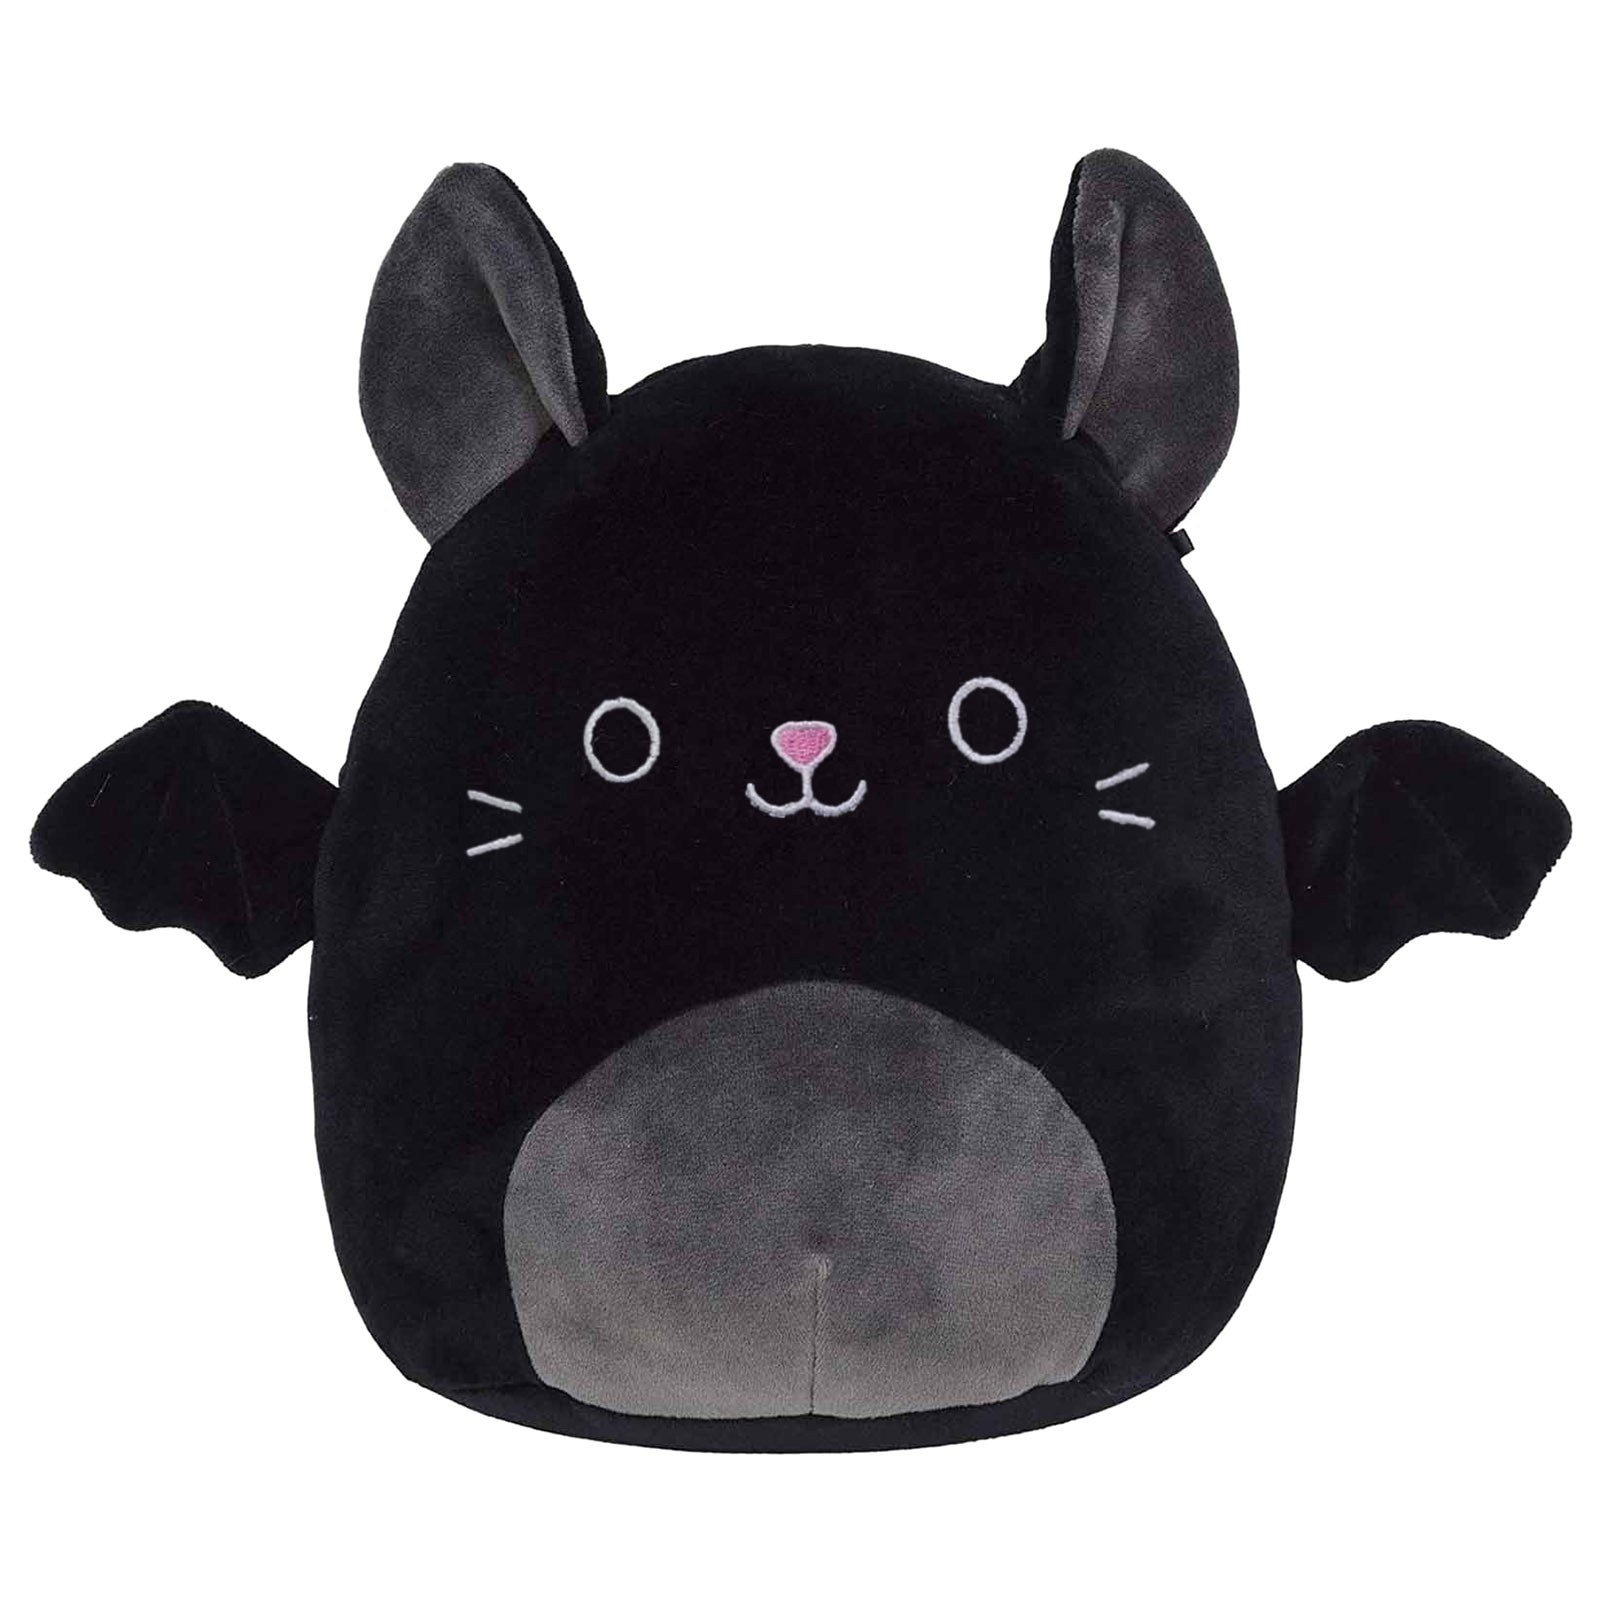 8 Inch High Quality Soft Plush Stuffed Toys Comfortable Doll Toy The bat dolls Nap Sleepy Pillow Cus